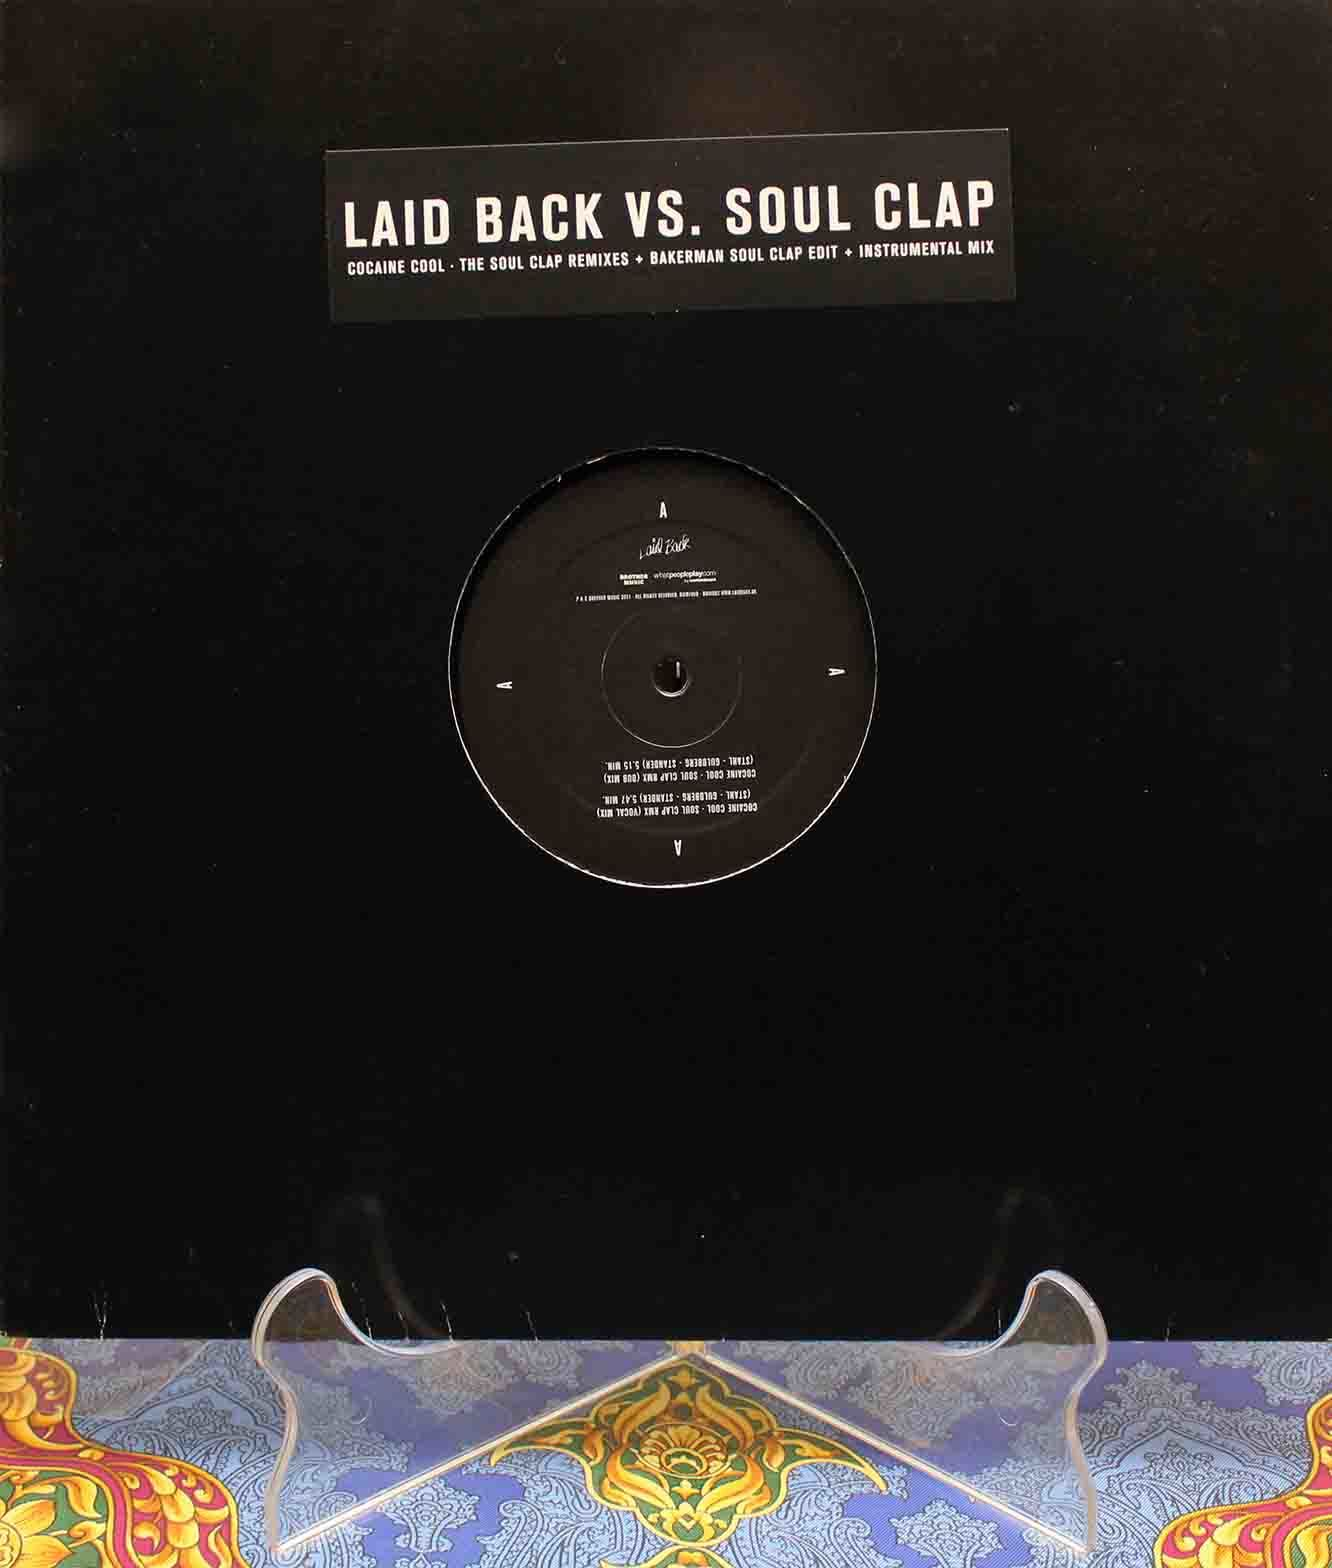 Laid Back Vs Soul Clap ‎– Cocaine Cool 0 (1)